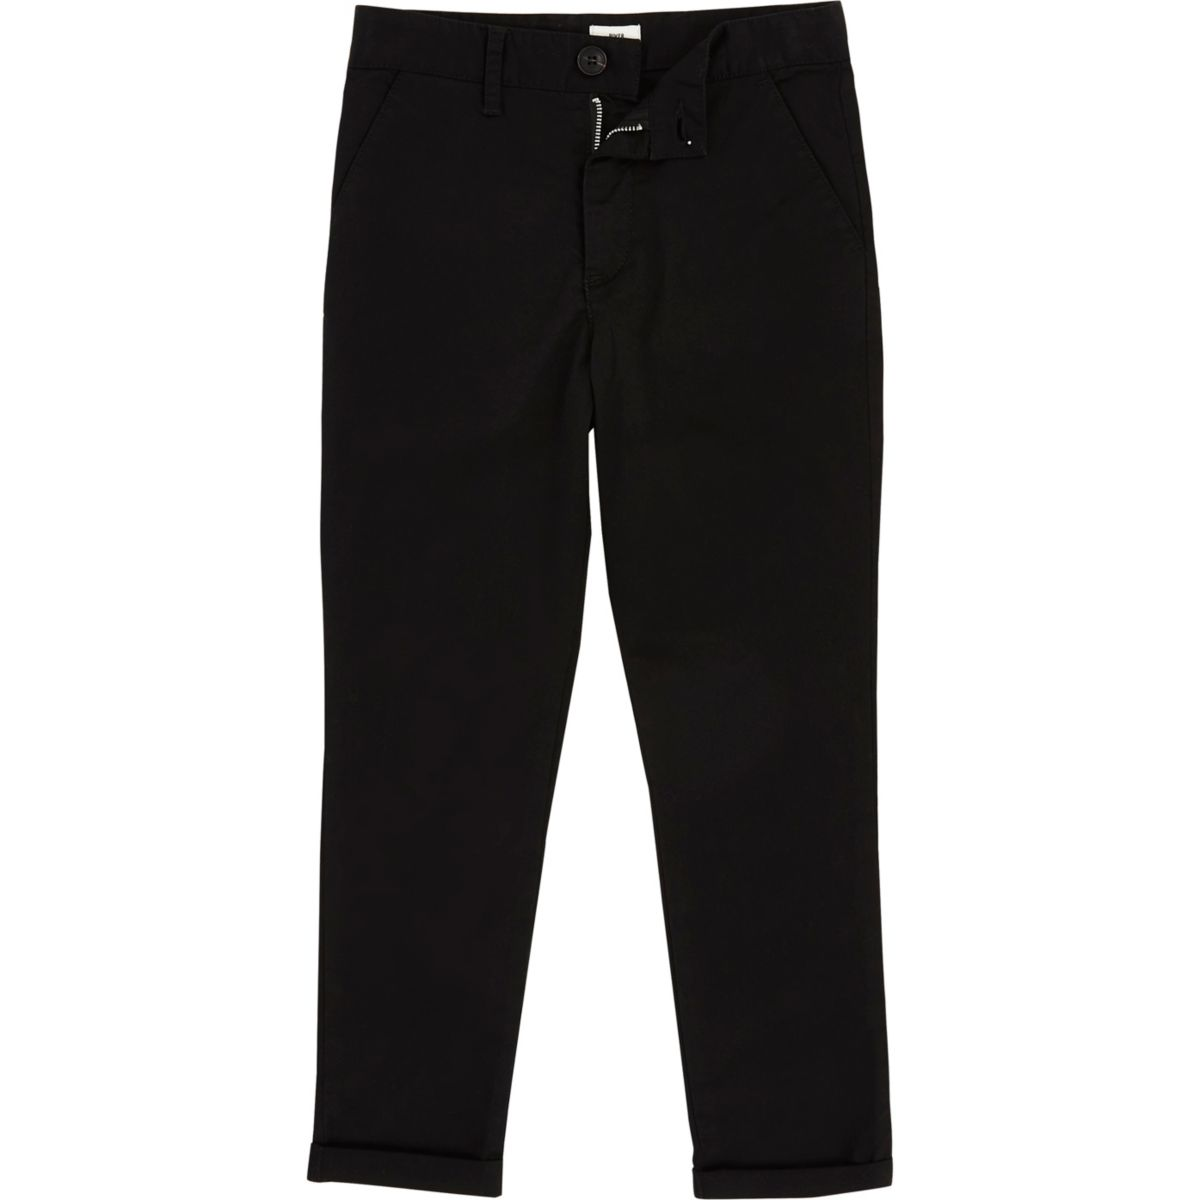 Boys black skinny fit chino pants